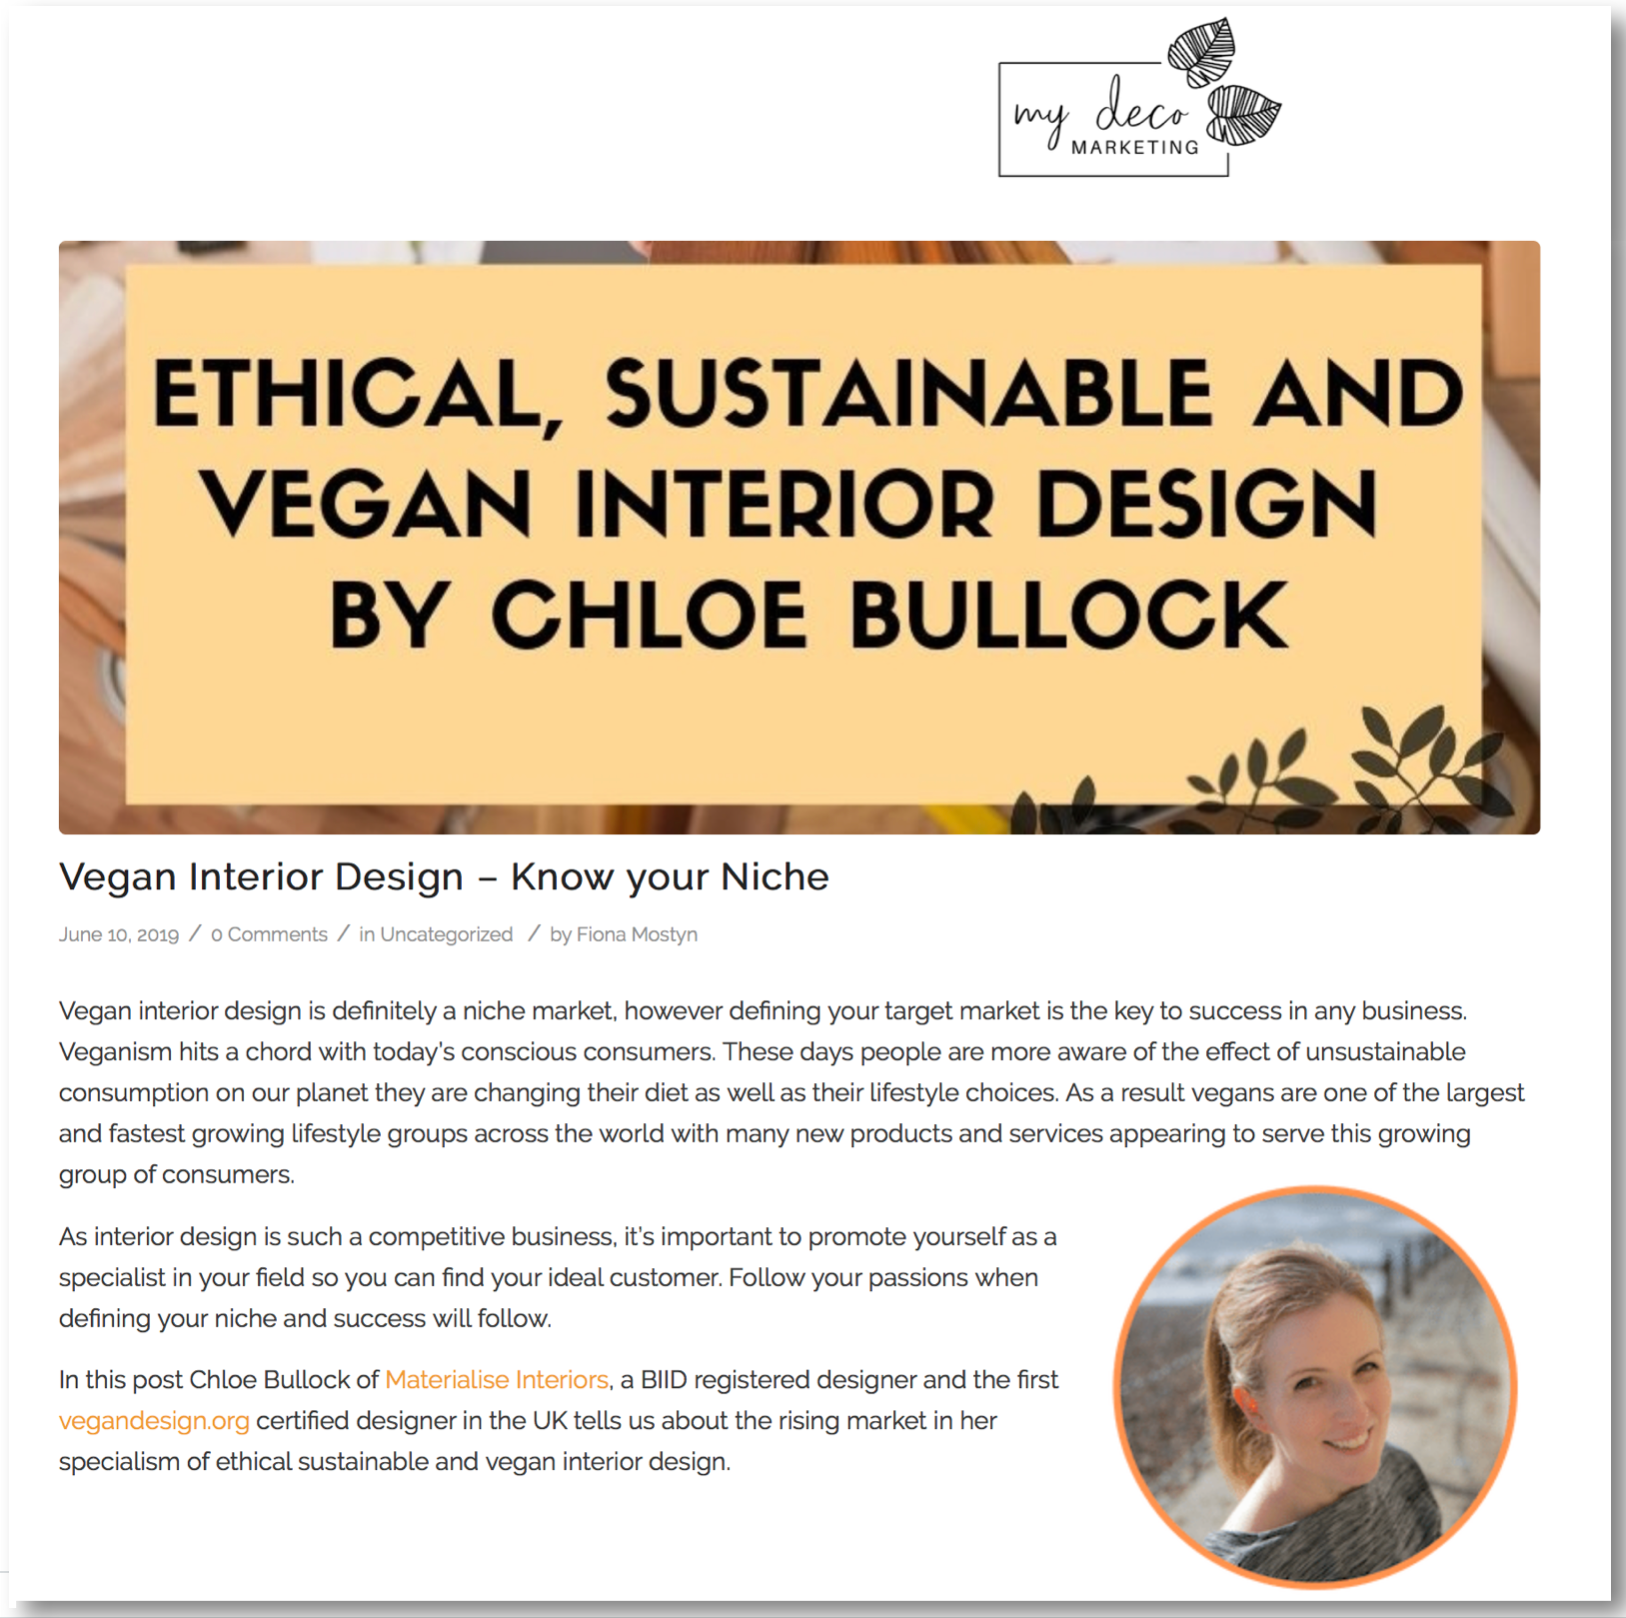 My Deco Marketing platform 'Ethical, sustainable and vegan interior design' – June 2019